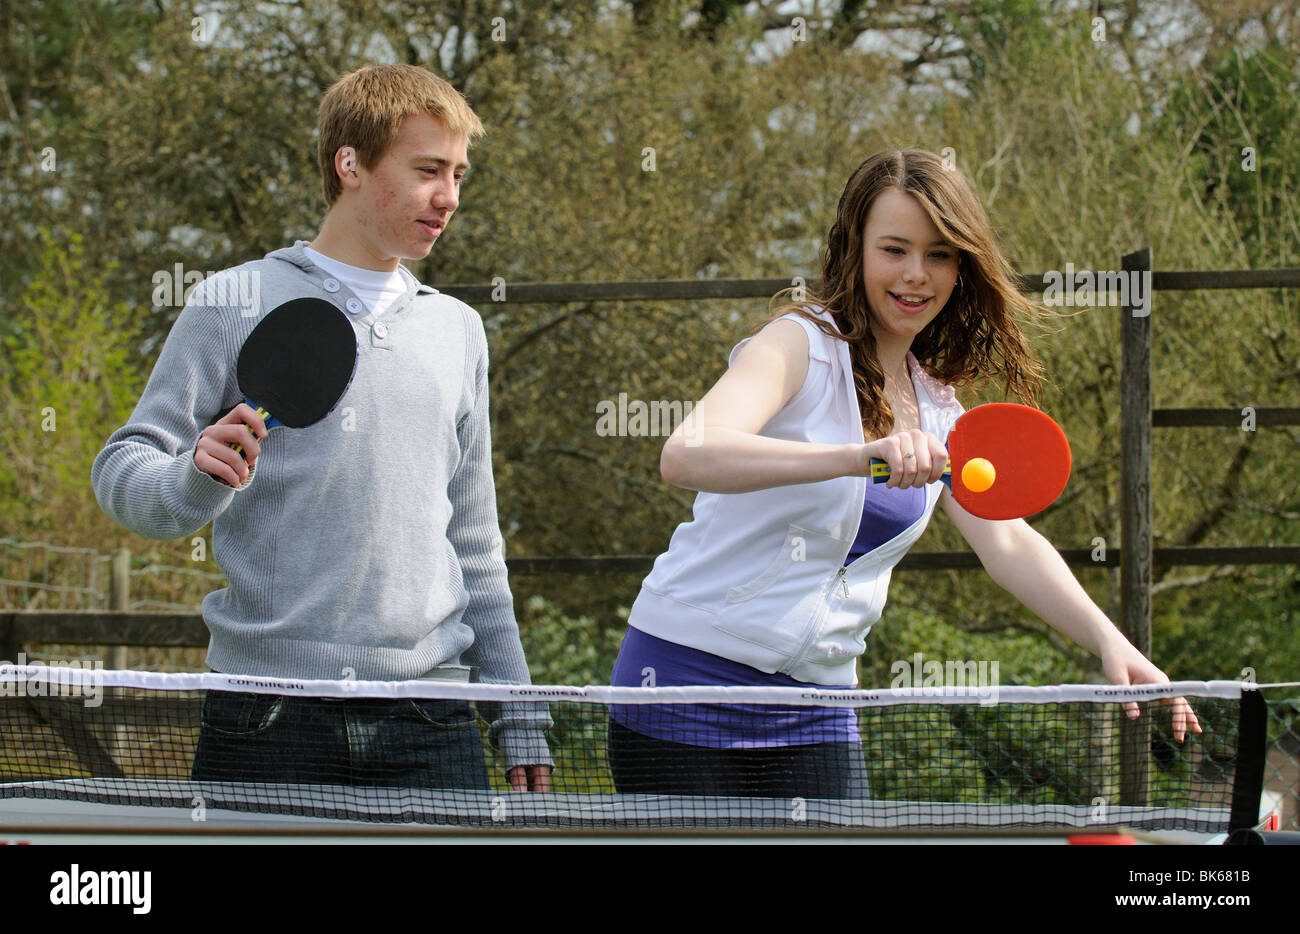 Teenagers playing a game of table tennis in their garden - Stock Image